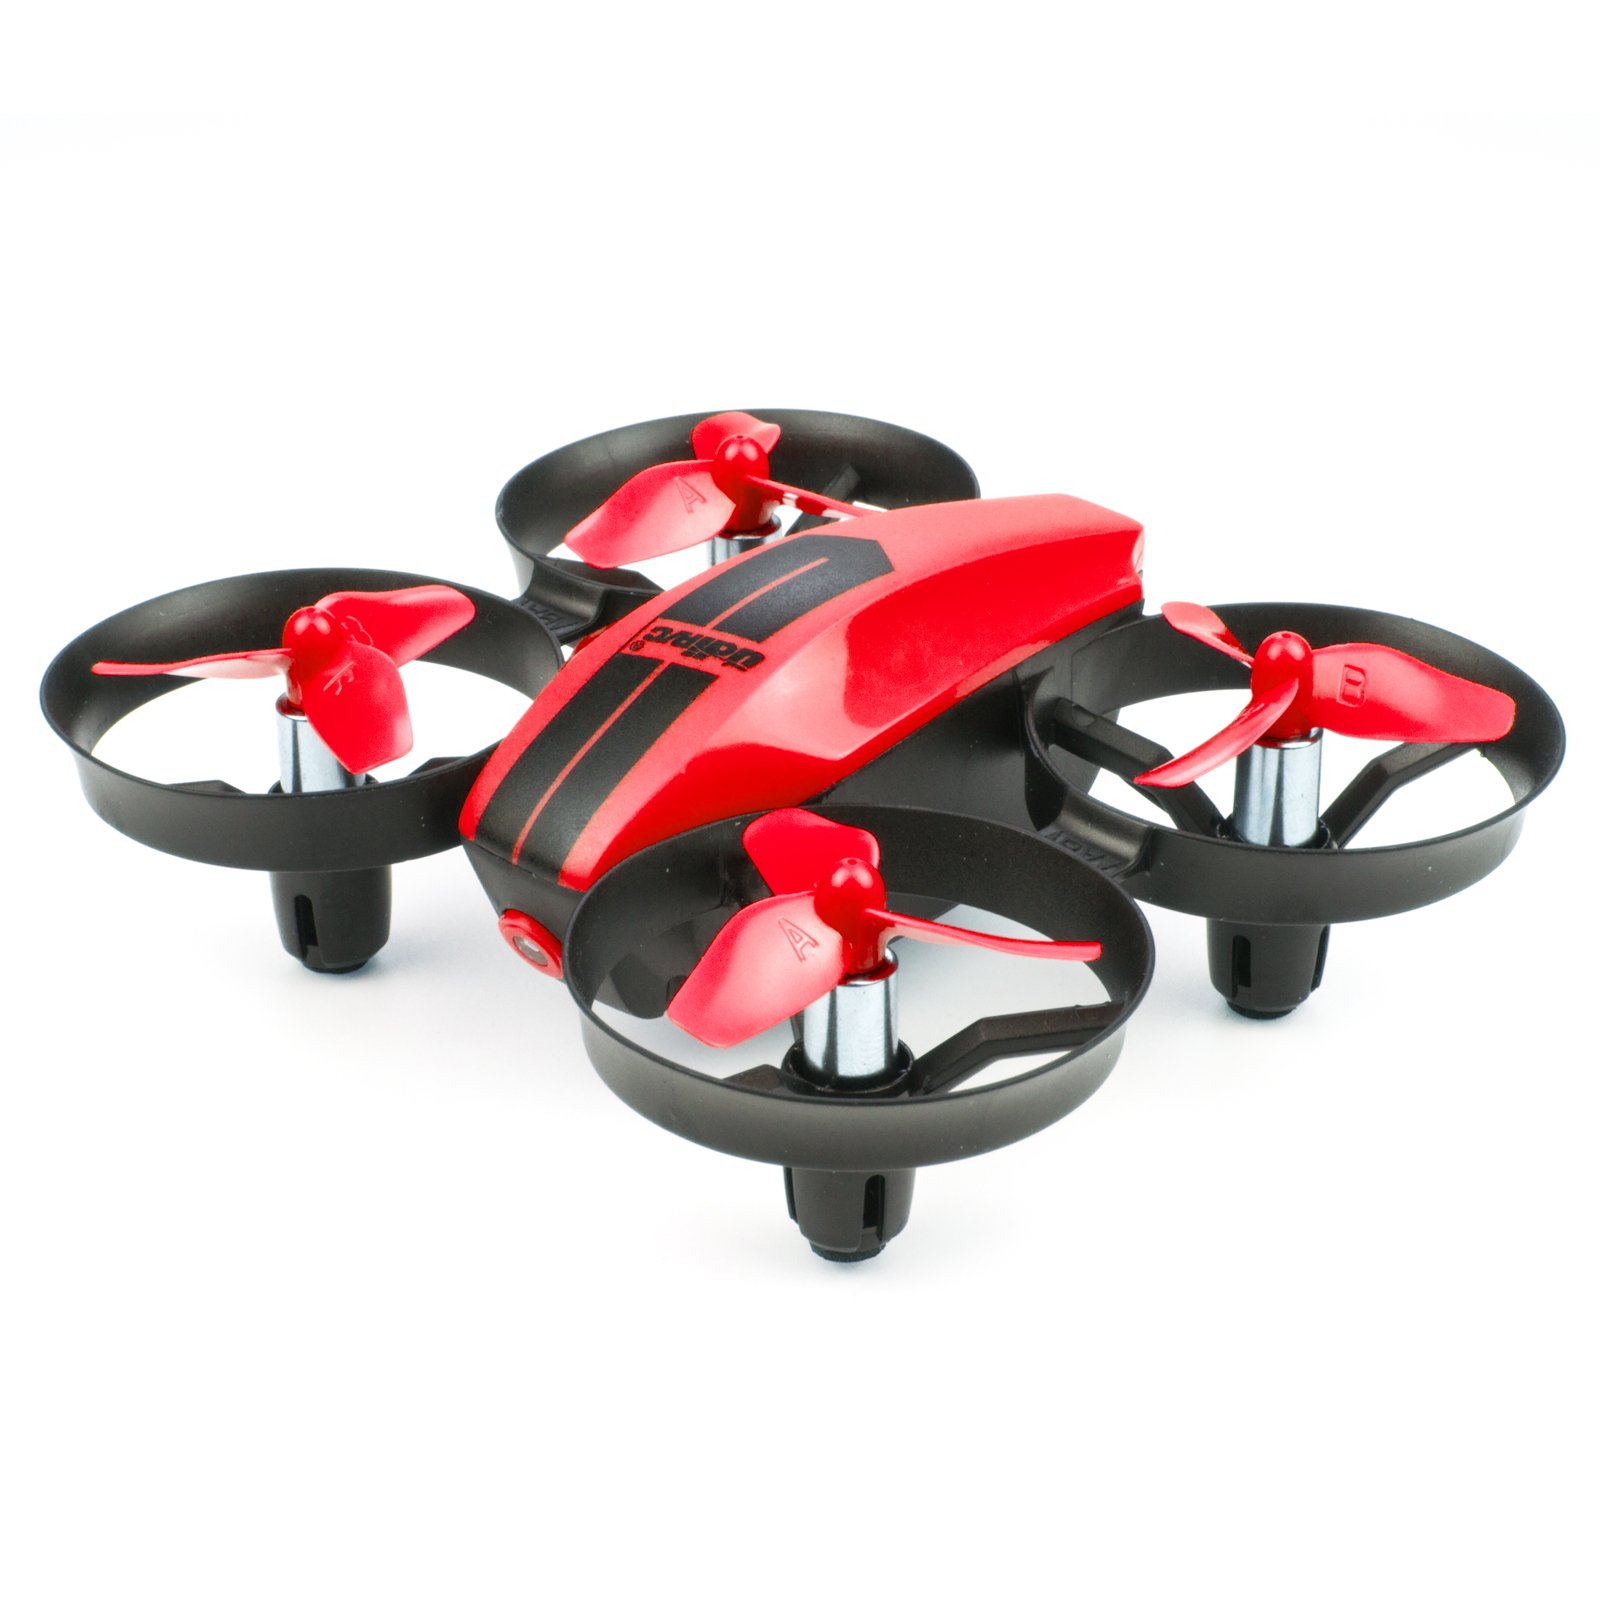 UDI U46 Mini Drone for Kids 2.4G 4CH RC Drones with Altitude Hold Headless Mode One Key Take Off Landing Nano Quadcopter for Beginners Flying Training, Red